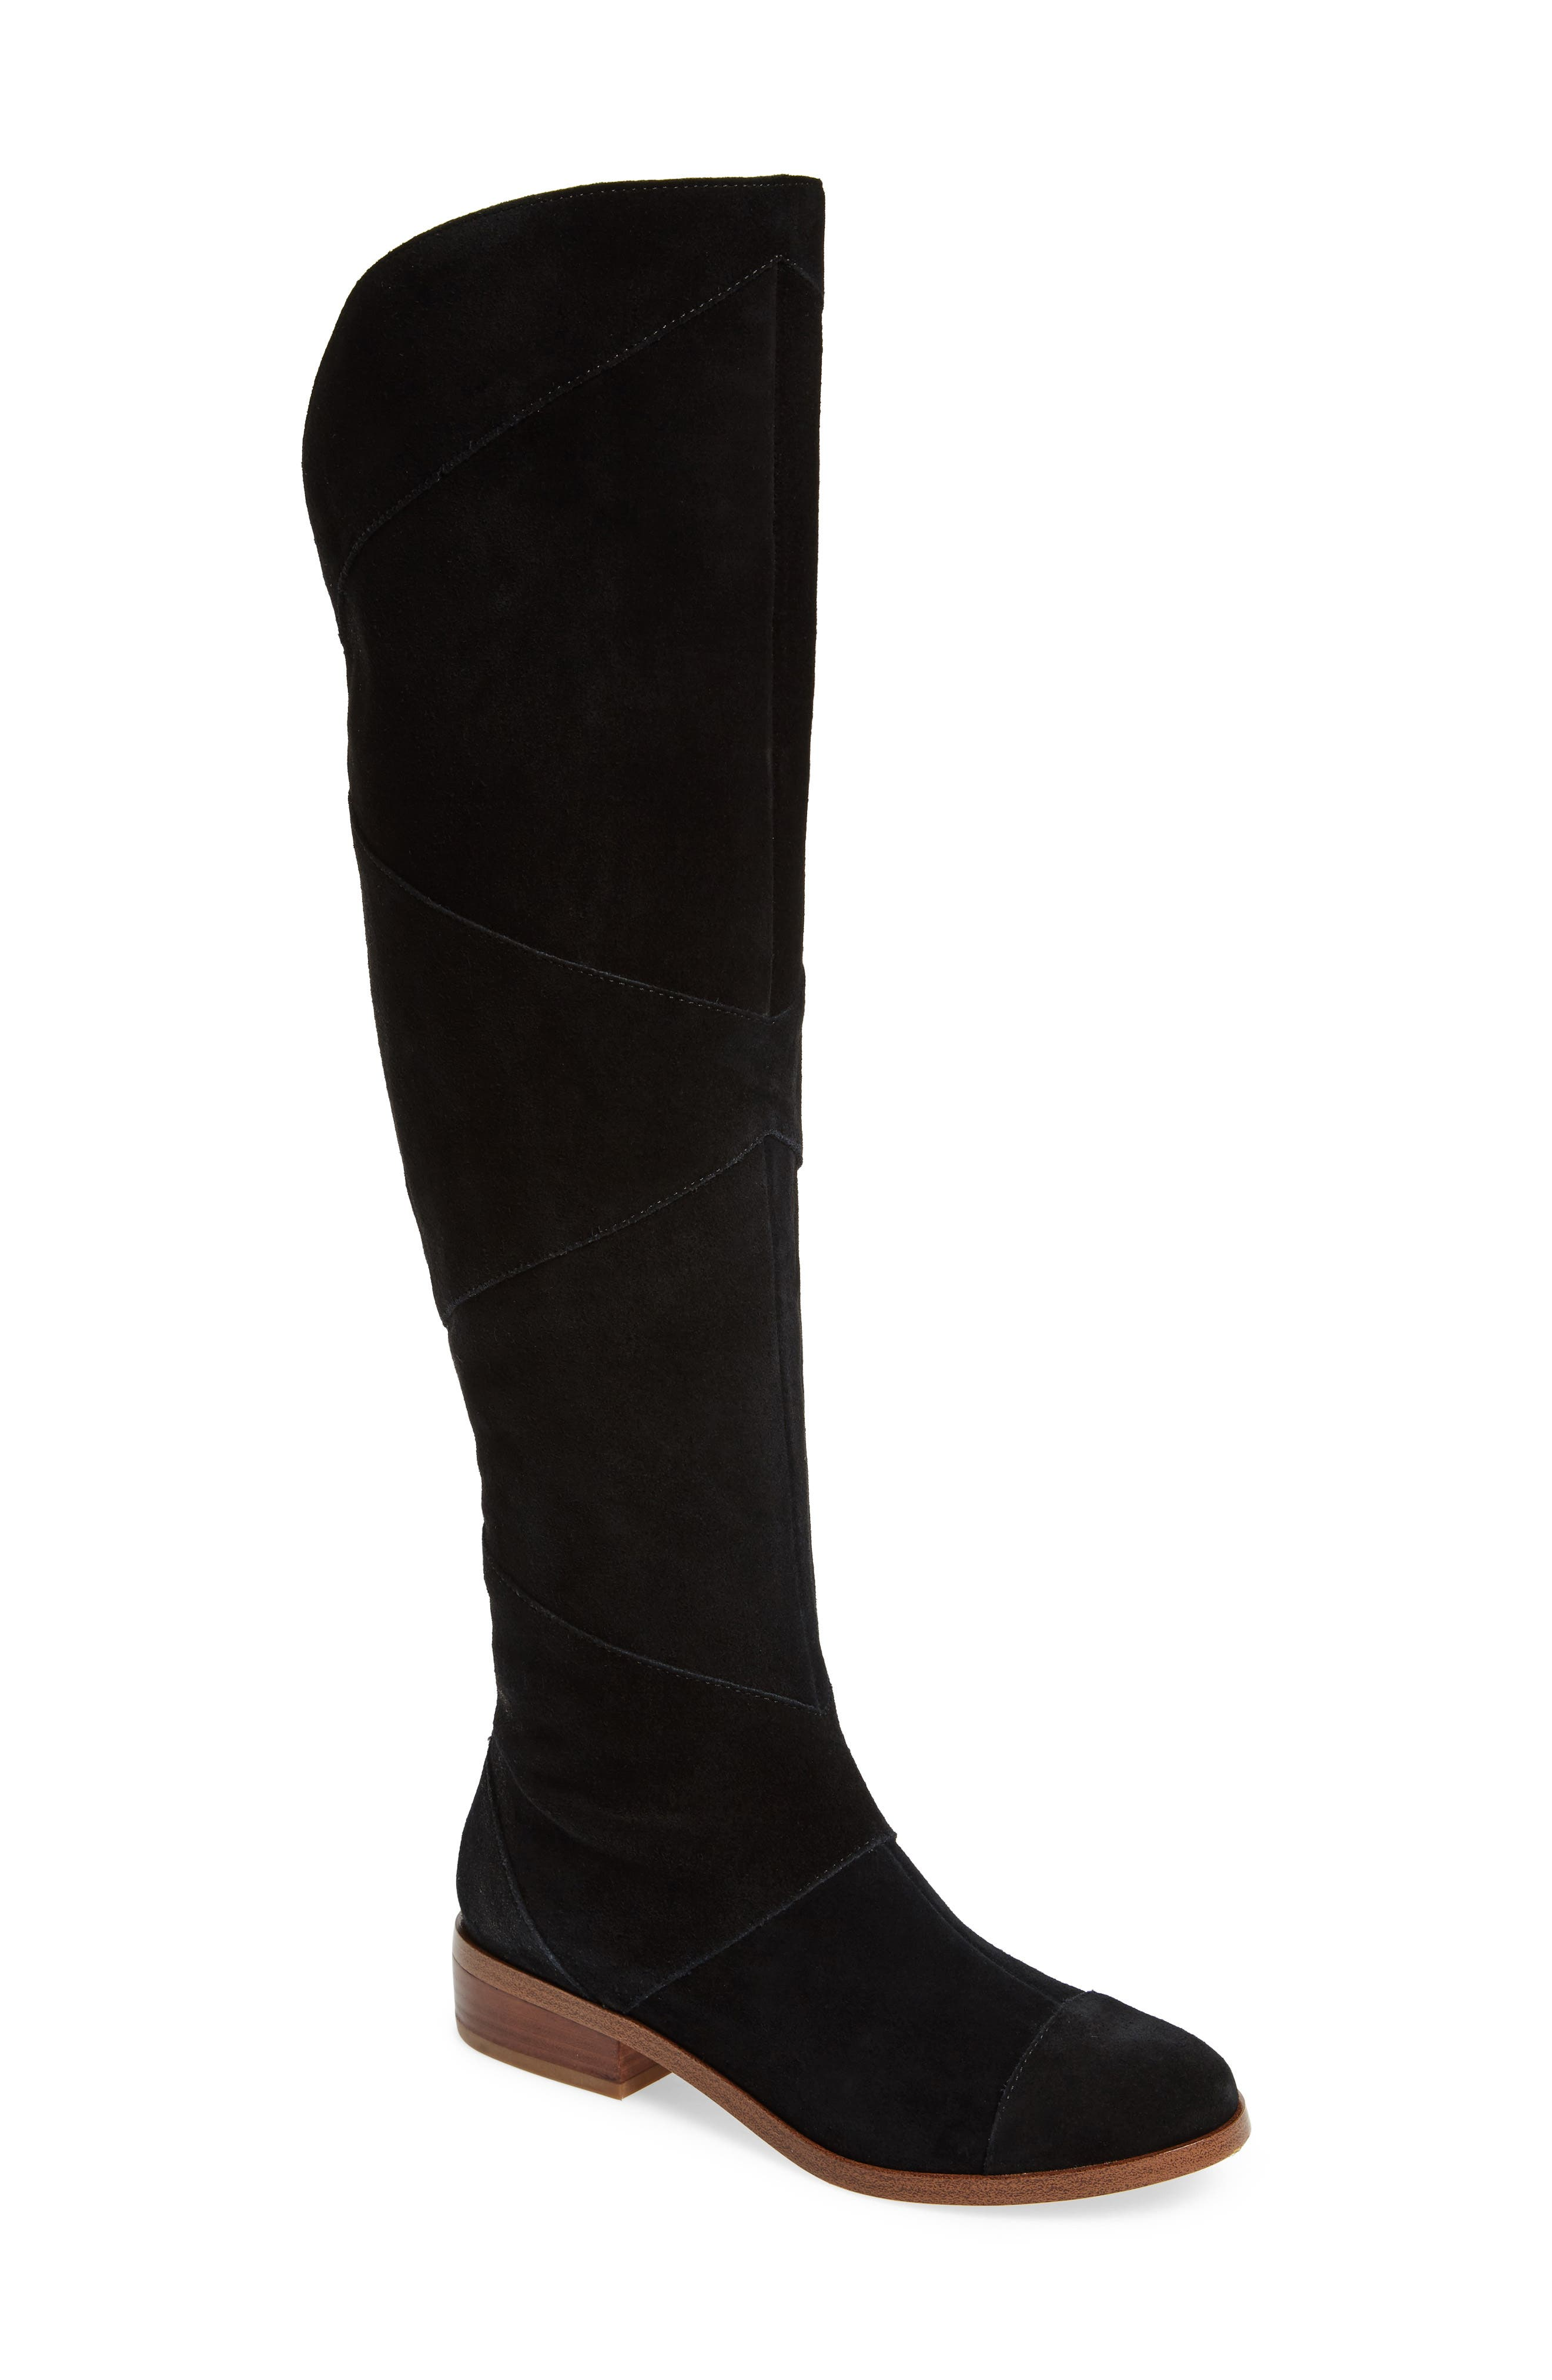 SOLE SOCIETY, Tiff Over the Knee Boot, Main thumbnail 1, color, BLACK